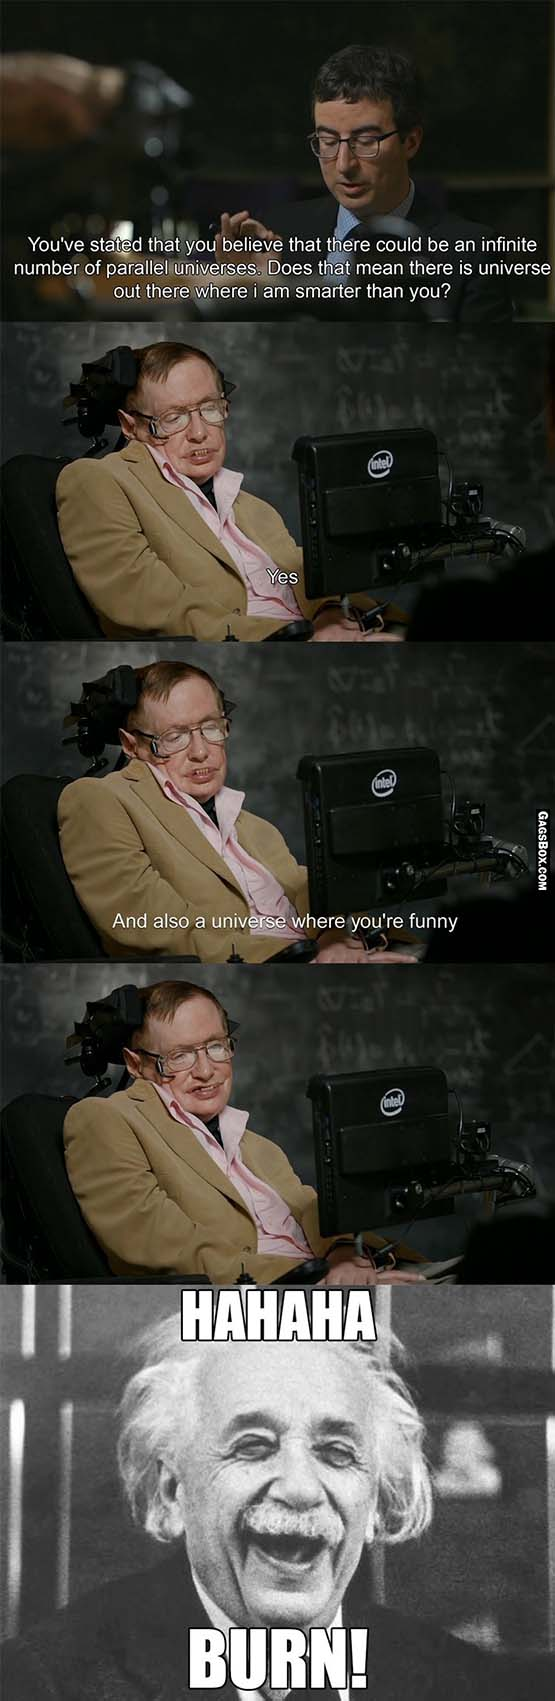 Stephen Hawking Has A Great Sense Of Humor - #funny, #lol, #jokes, #funnypictures, #lolpics, #funnypics,